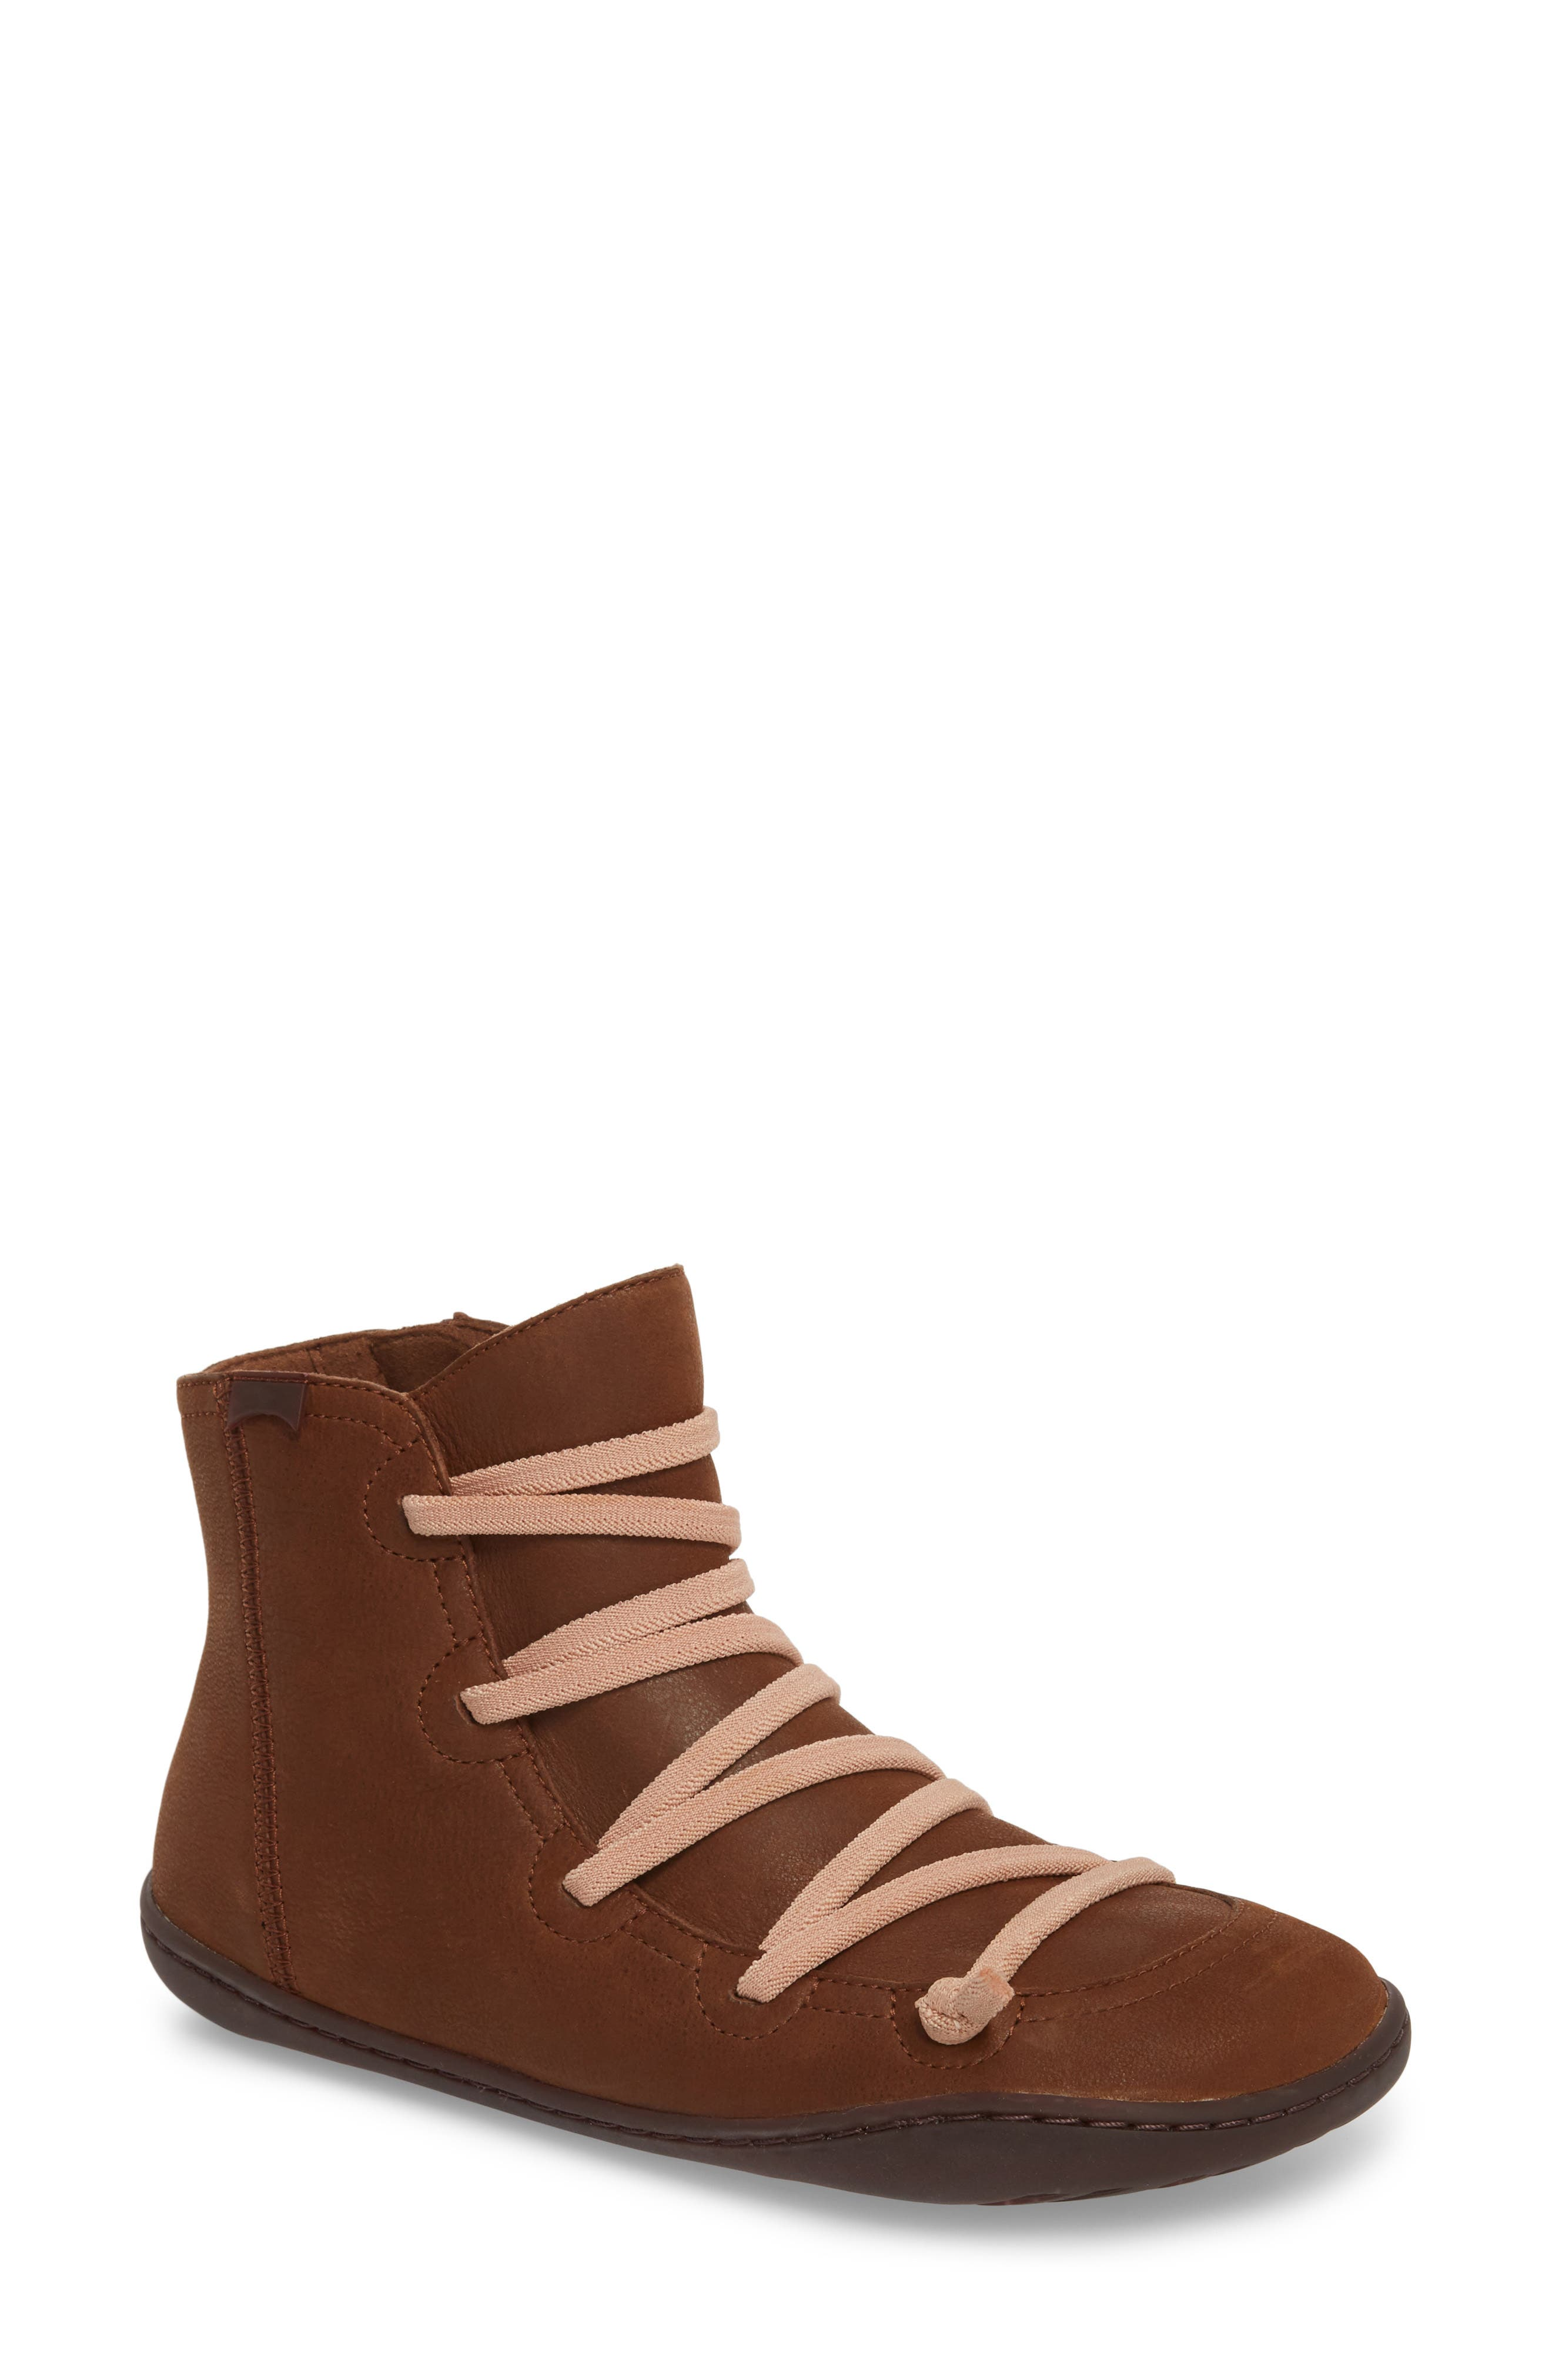 CAMPER,                             Peu Cami Bootie,                             Main thumbnail 1, color,                             MEDIUM BROWN LEATHER